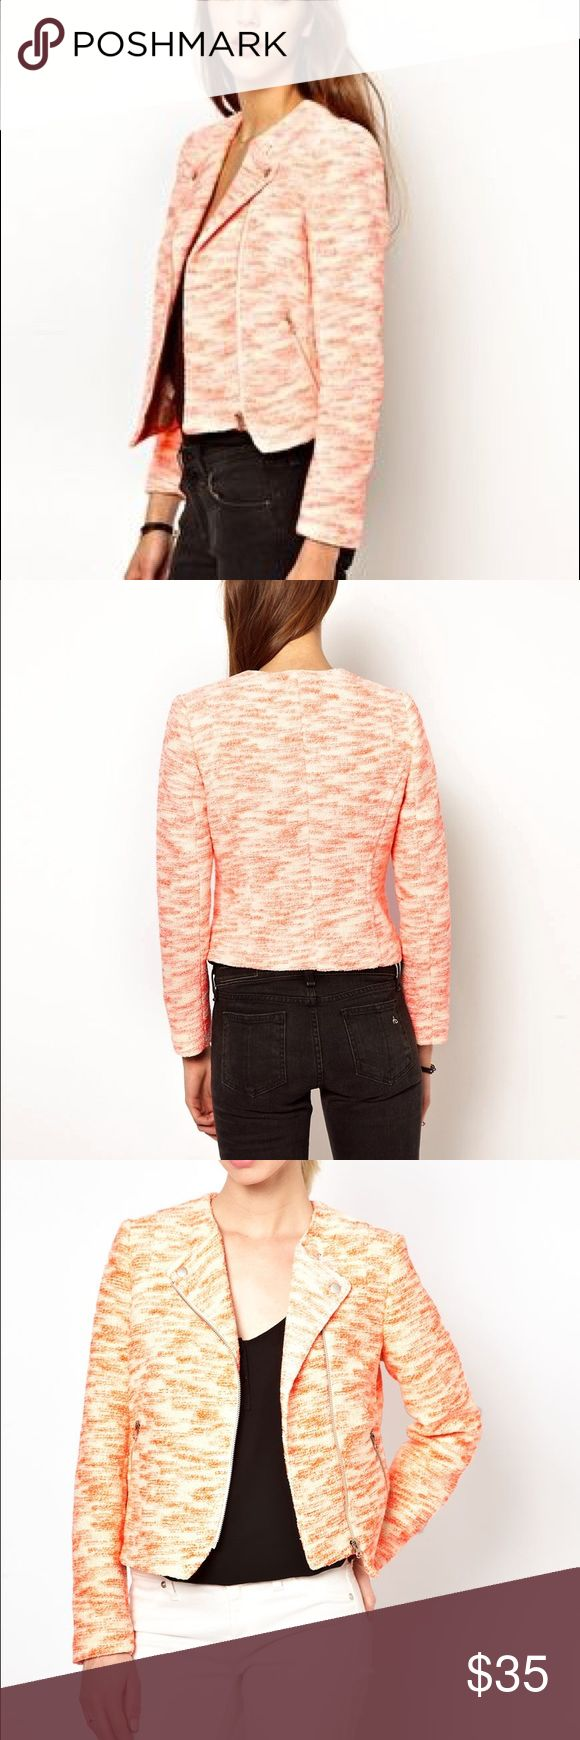 Whistles Textured Biker Jacket This beautiful jacket is cut in a cool biker shape so you can dress it up with pearls or go edgy rock star with some leather pants! It has a silky lining and the outside is soft but structured. The color is a brindled in pink-orange and white. Outer: 69%cotton, 17% polyester, 14%acrylic. Lining: 100% viscose   Zippered pockets and front with snap collar. Love this jacket!! Whistles Jackets & Coats